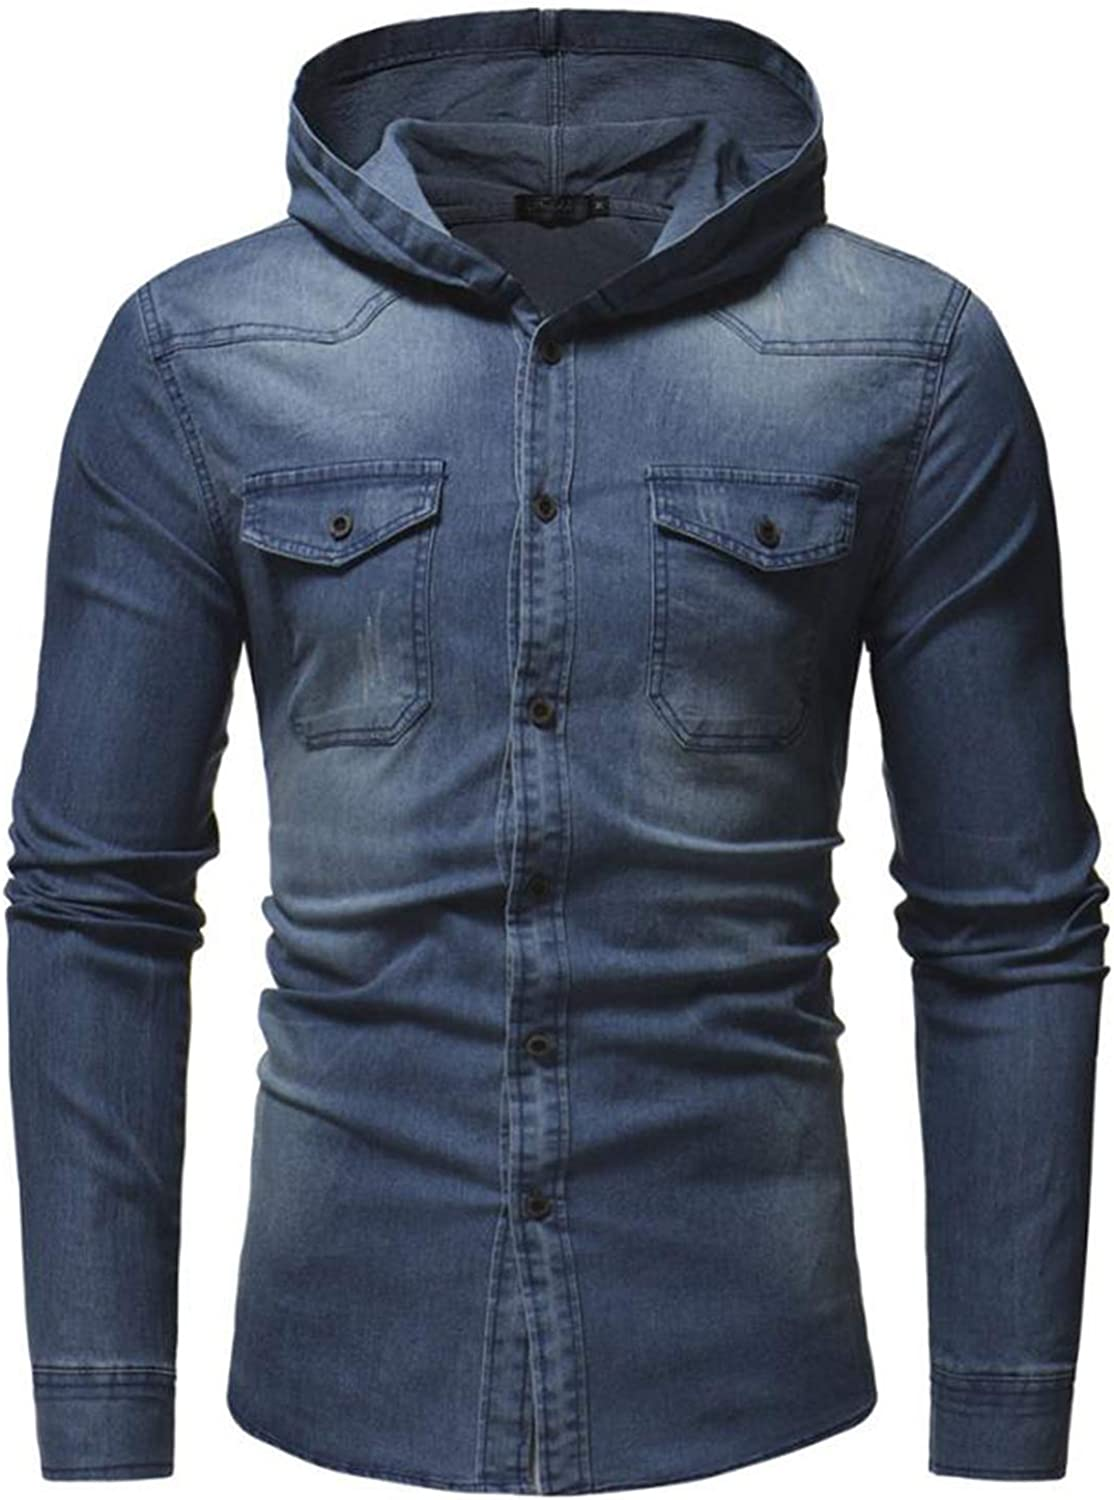 Mens Autumn Winter Hooded Button Vintage Distressed Demin Hoodie Tops Blouse